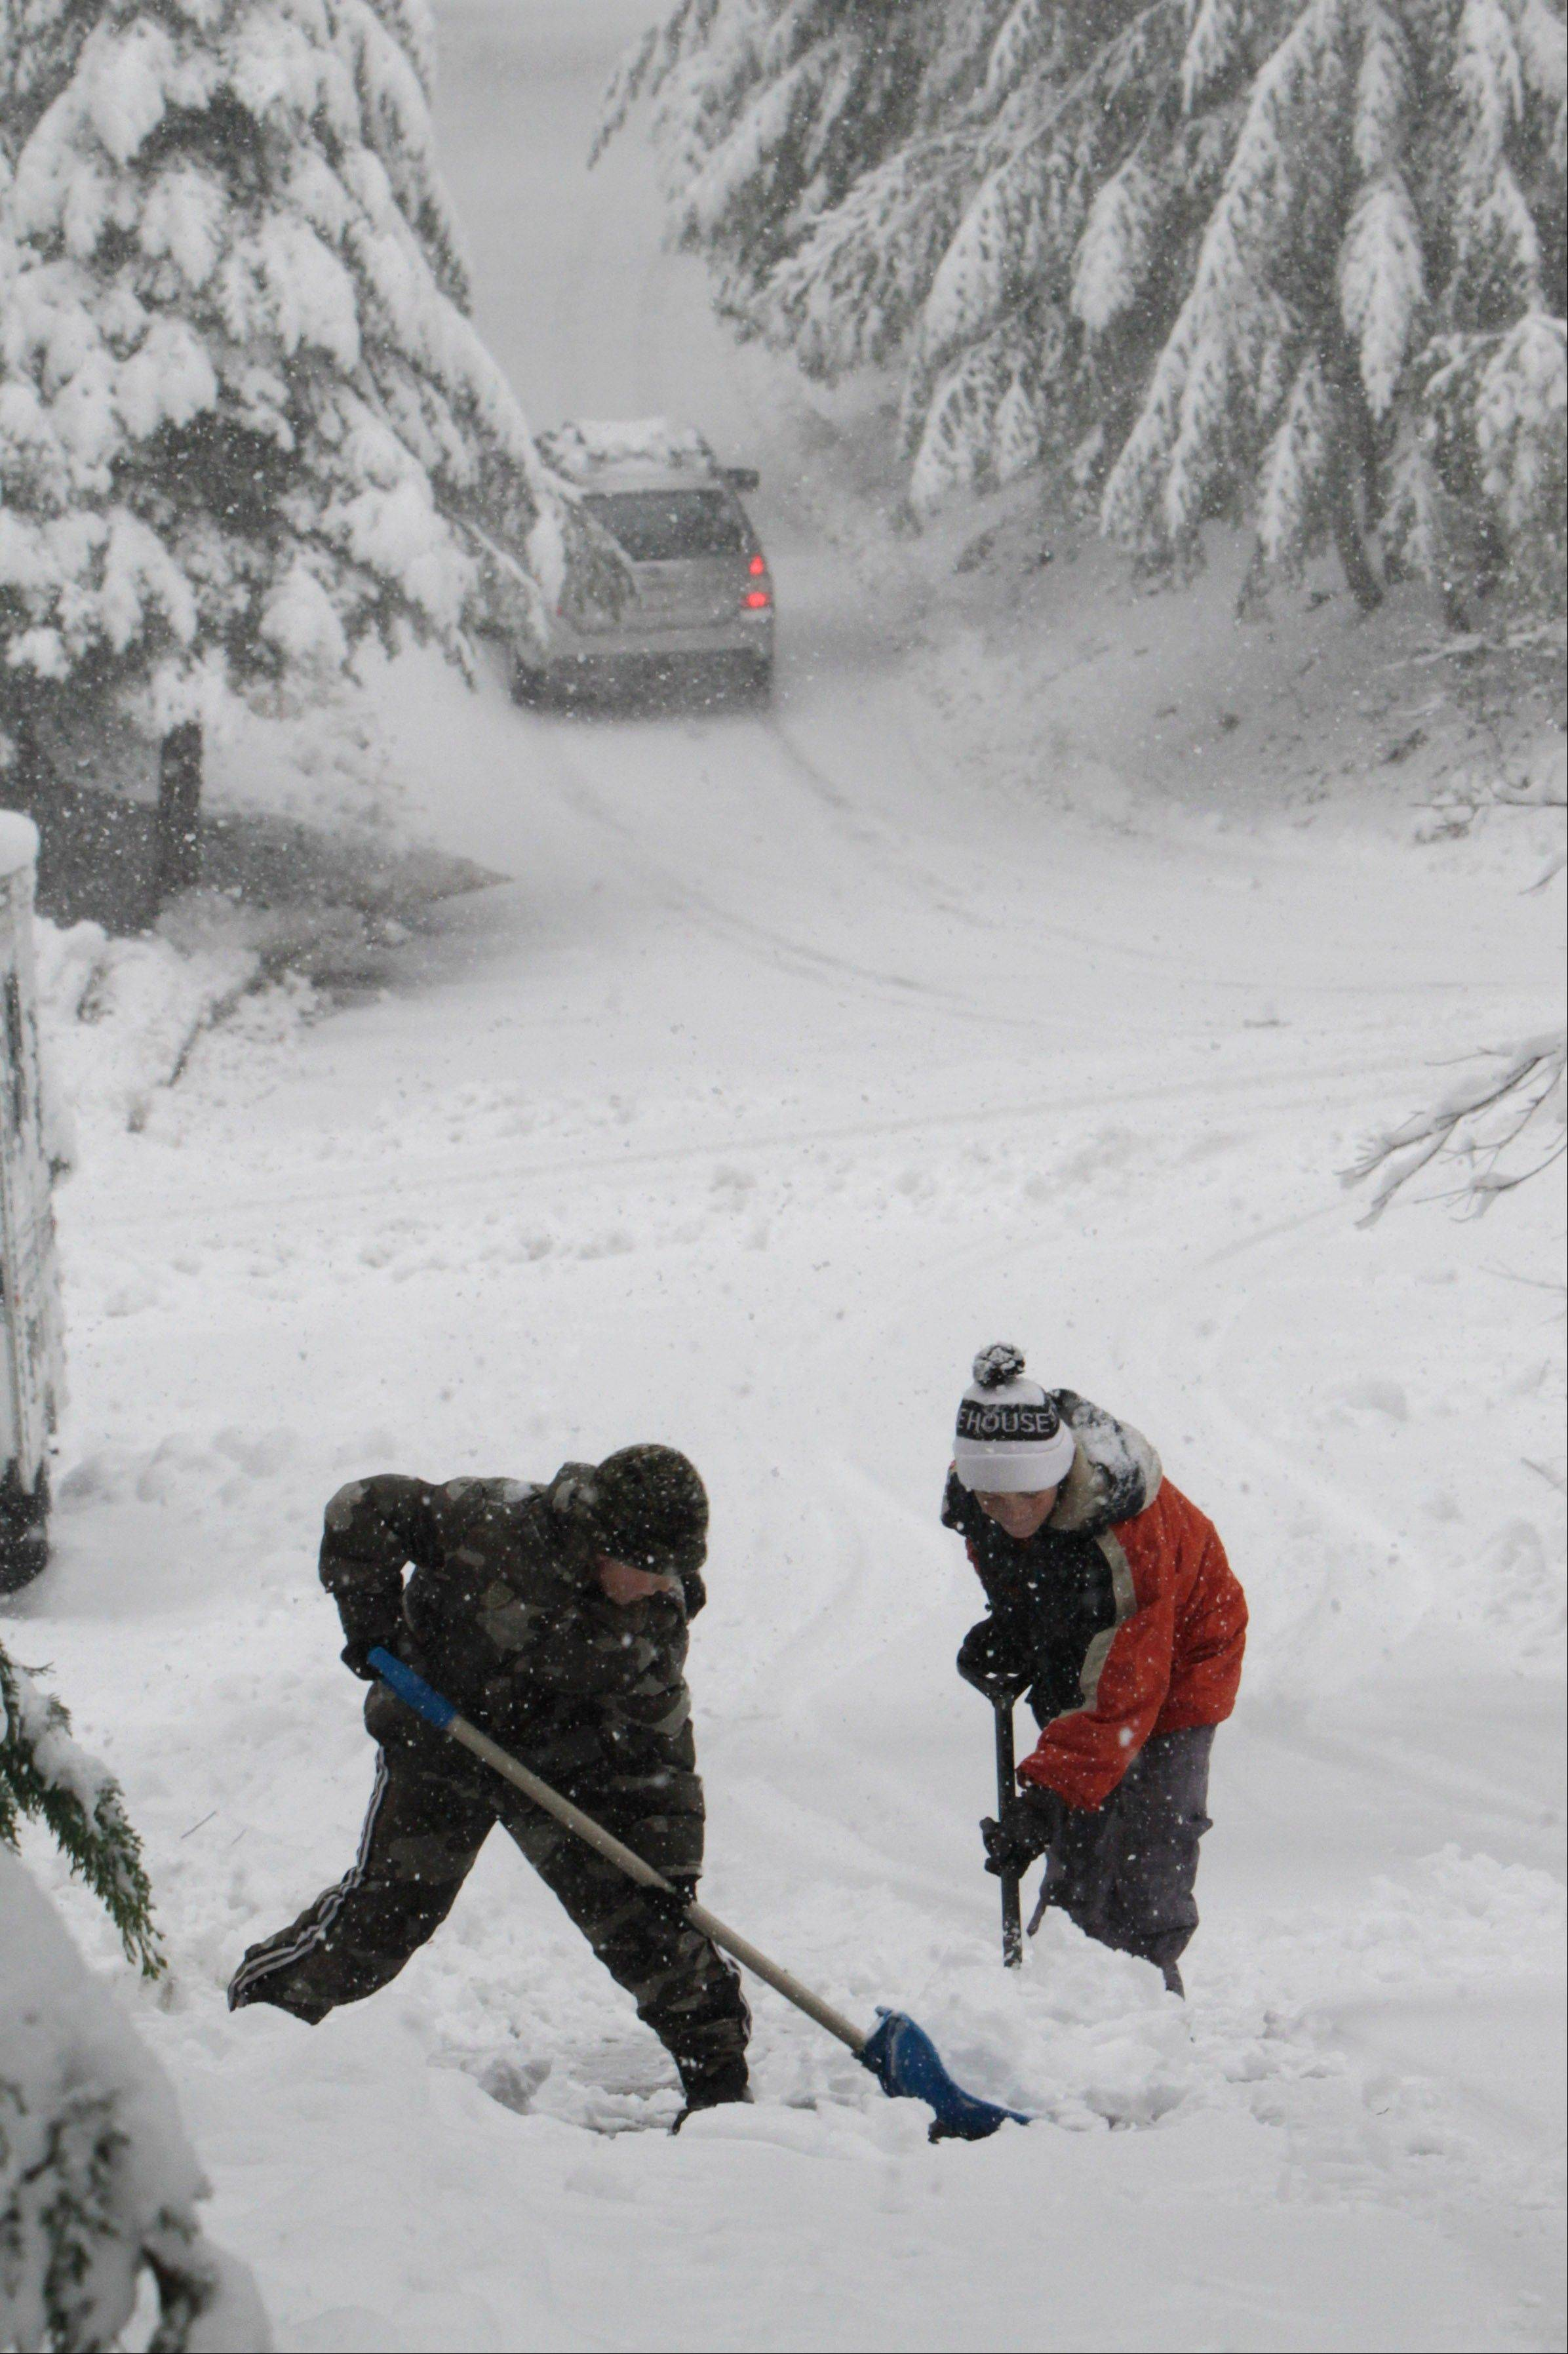 Ethan Mulhollen, 8, left, and James Roberts, Jr., 13, dig out a driveway in Pollock Pines, Calif., Wednesday, Feb. 29, 2012. The Sierra Nevada received between 6-12 inches of snow overnight in a series of storms that are long overdue.